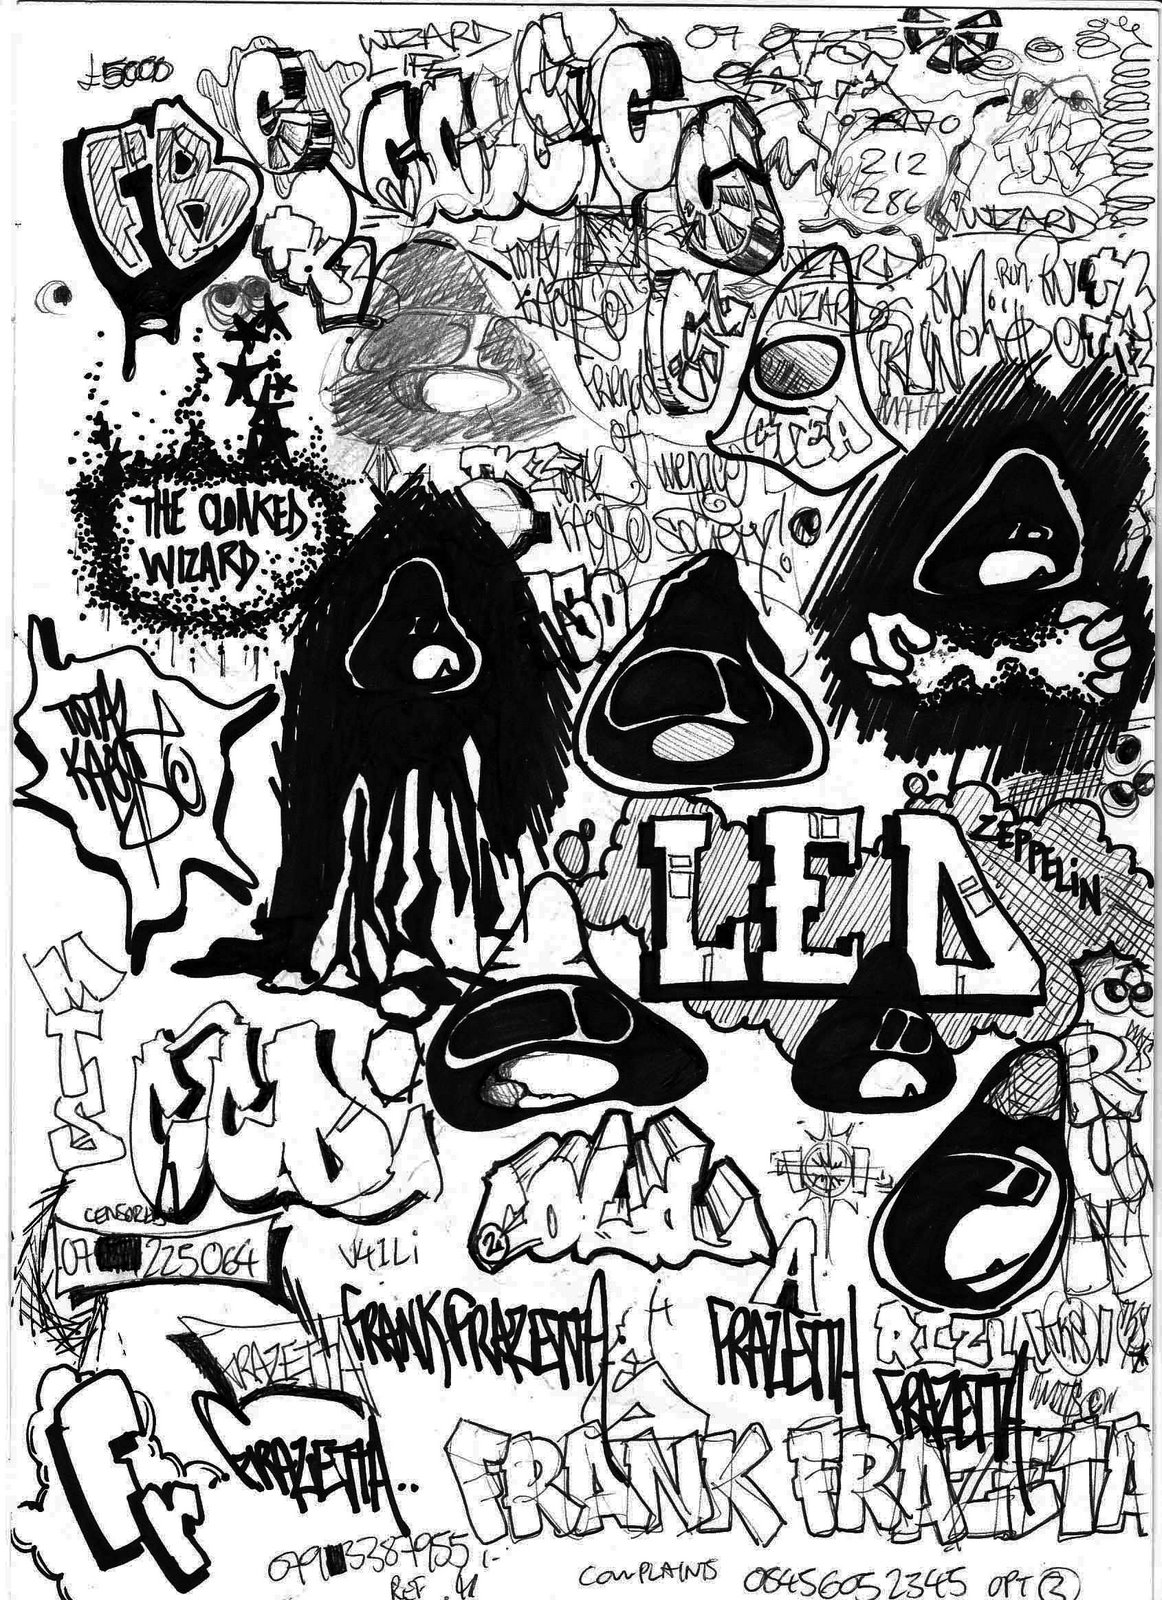 Coloring pages graffiti - Graffiti Tag Doodle From The Gallery Graffiti And Street Art